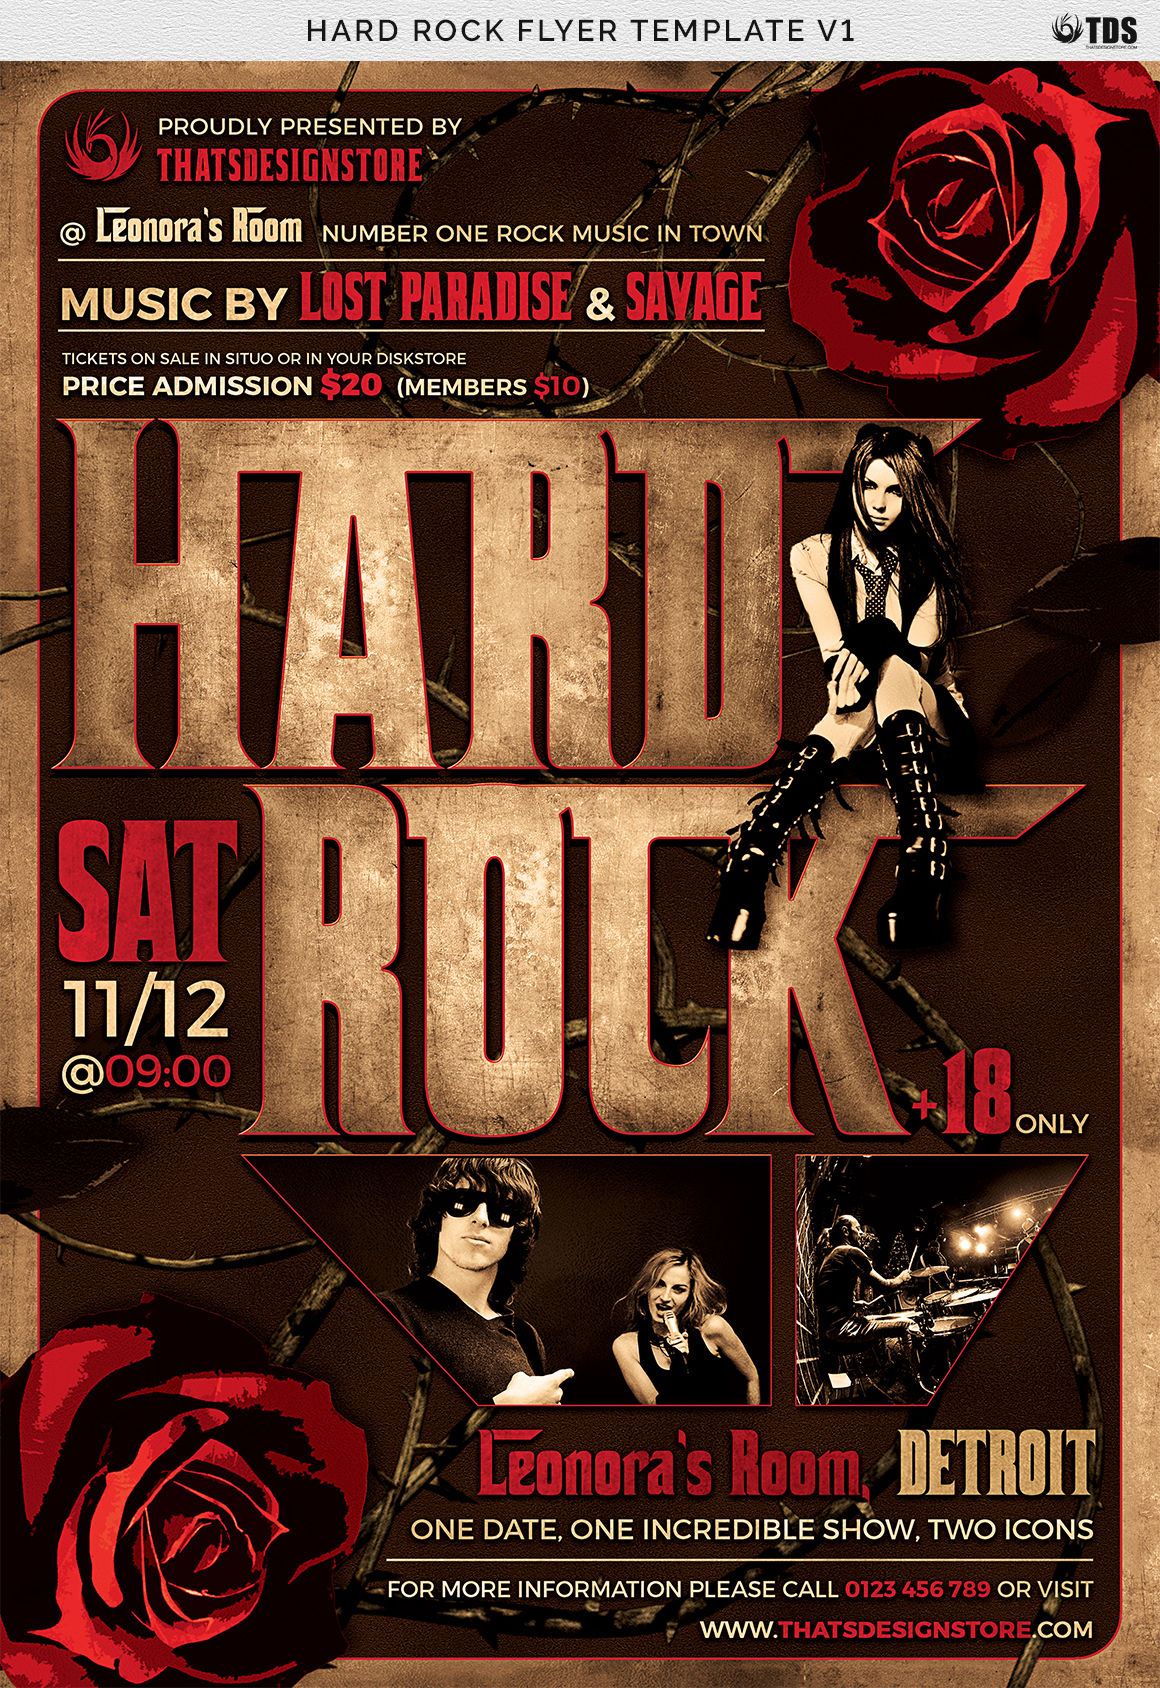 Hard Rock Flyer Template V1 example image 6